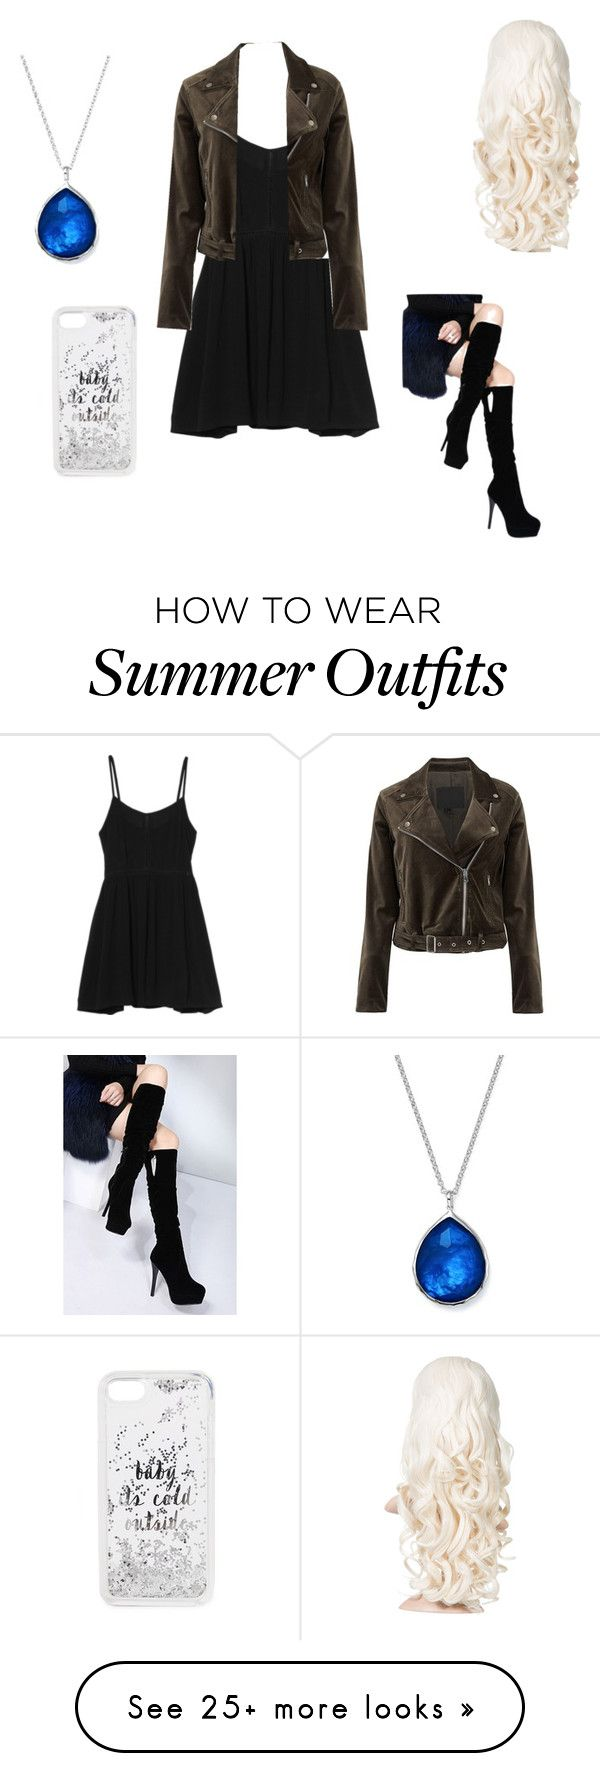 """""""Summer outfit 24"""" by estrellaojeda456 on Polyvore featuring MINKPINK, Ippolita, Paige Denim, WithChic and Kate Spade"""